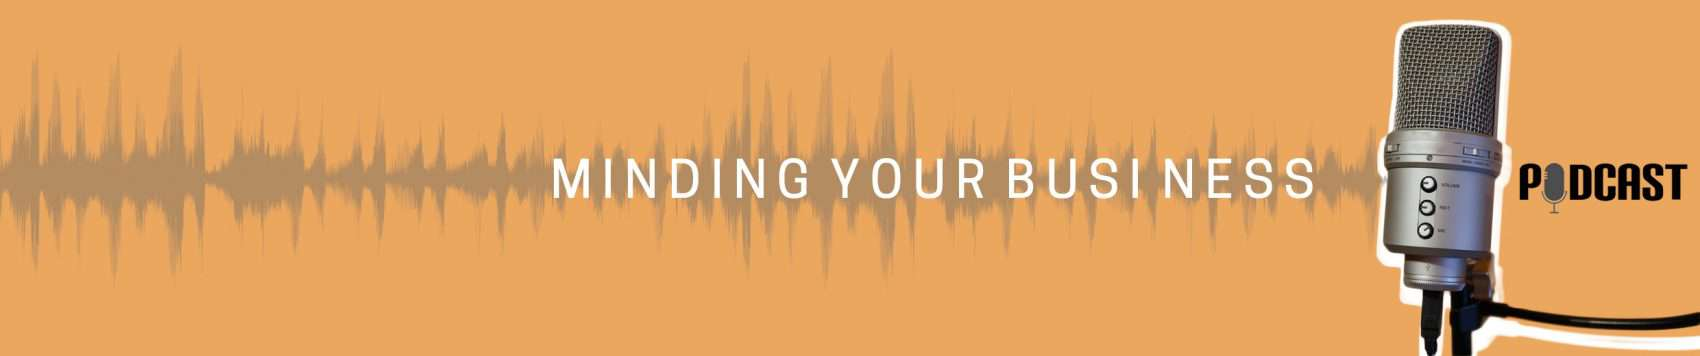 [Podcast] Minding Your Business Episode 5: Why Freelance